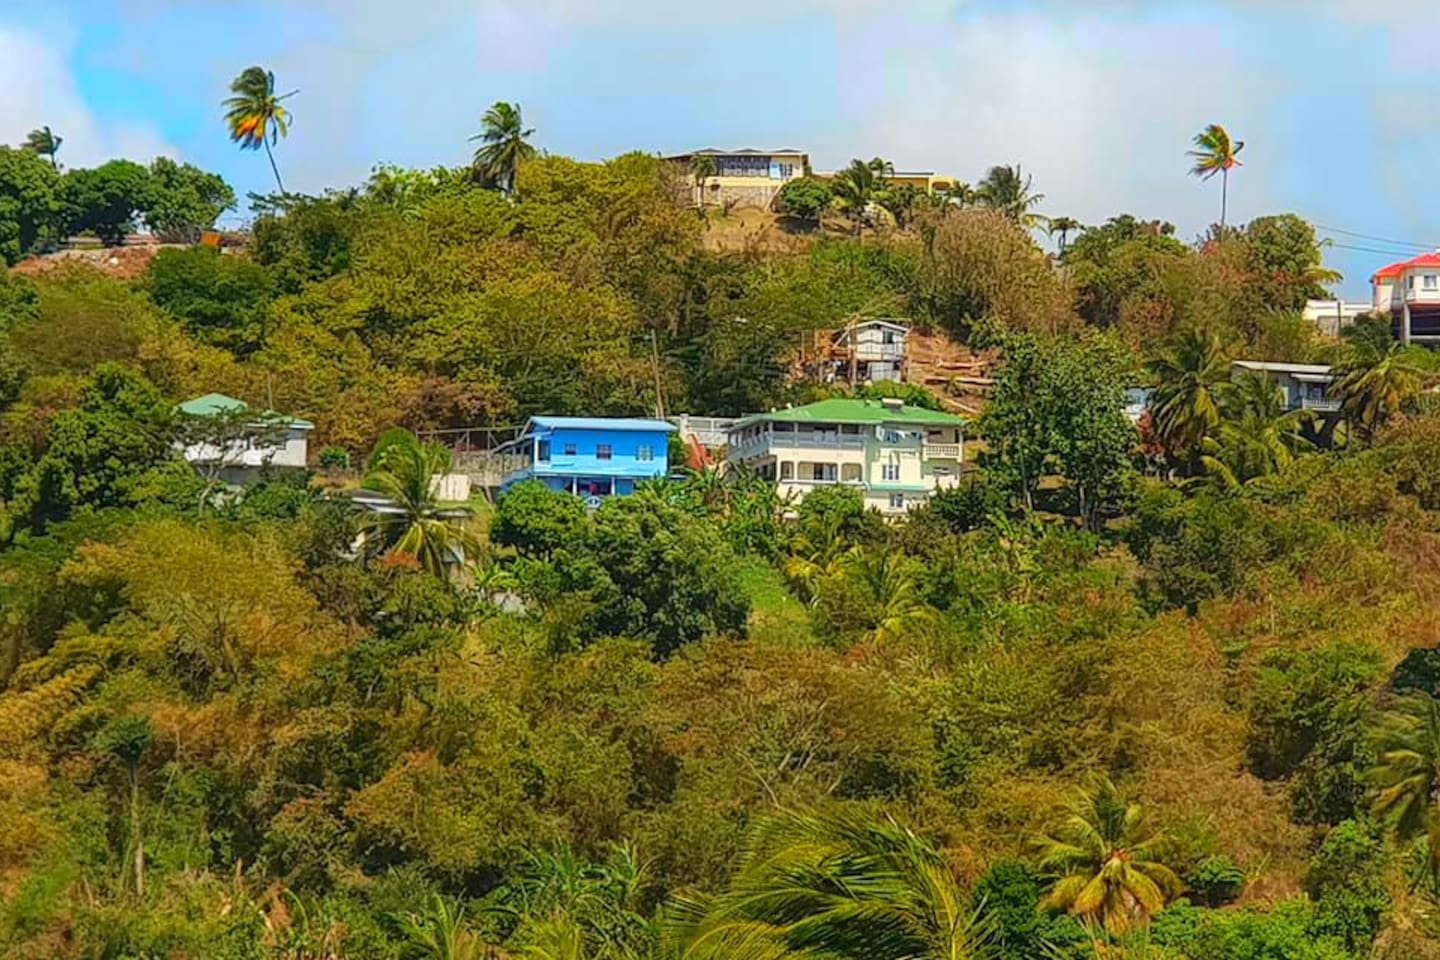 Morne Jaloux Apartments in the Morne Jaloux Hills